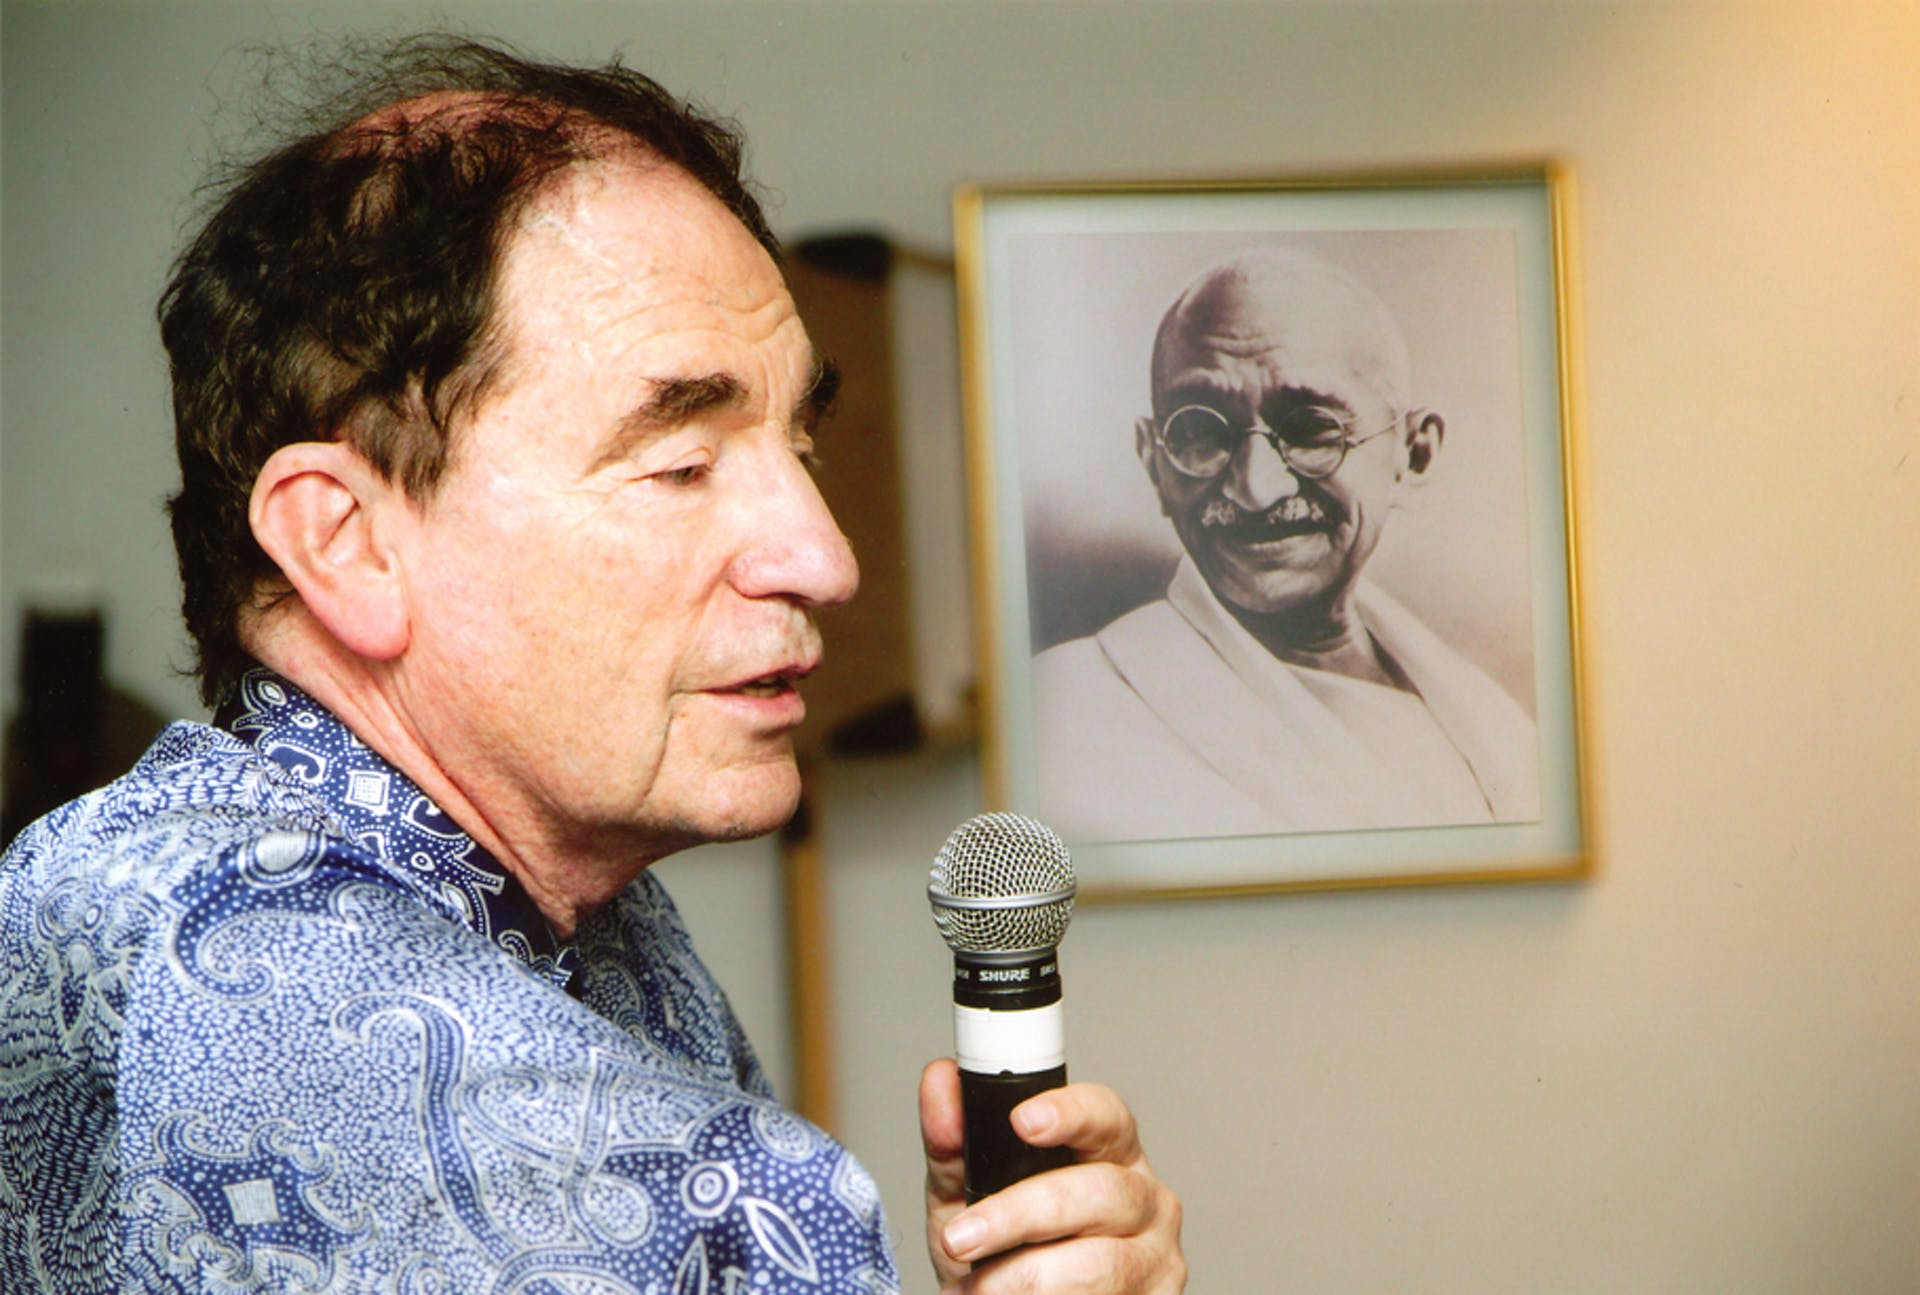 Soft Vengeance: Albie Sachs and the New South Africa